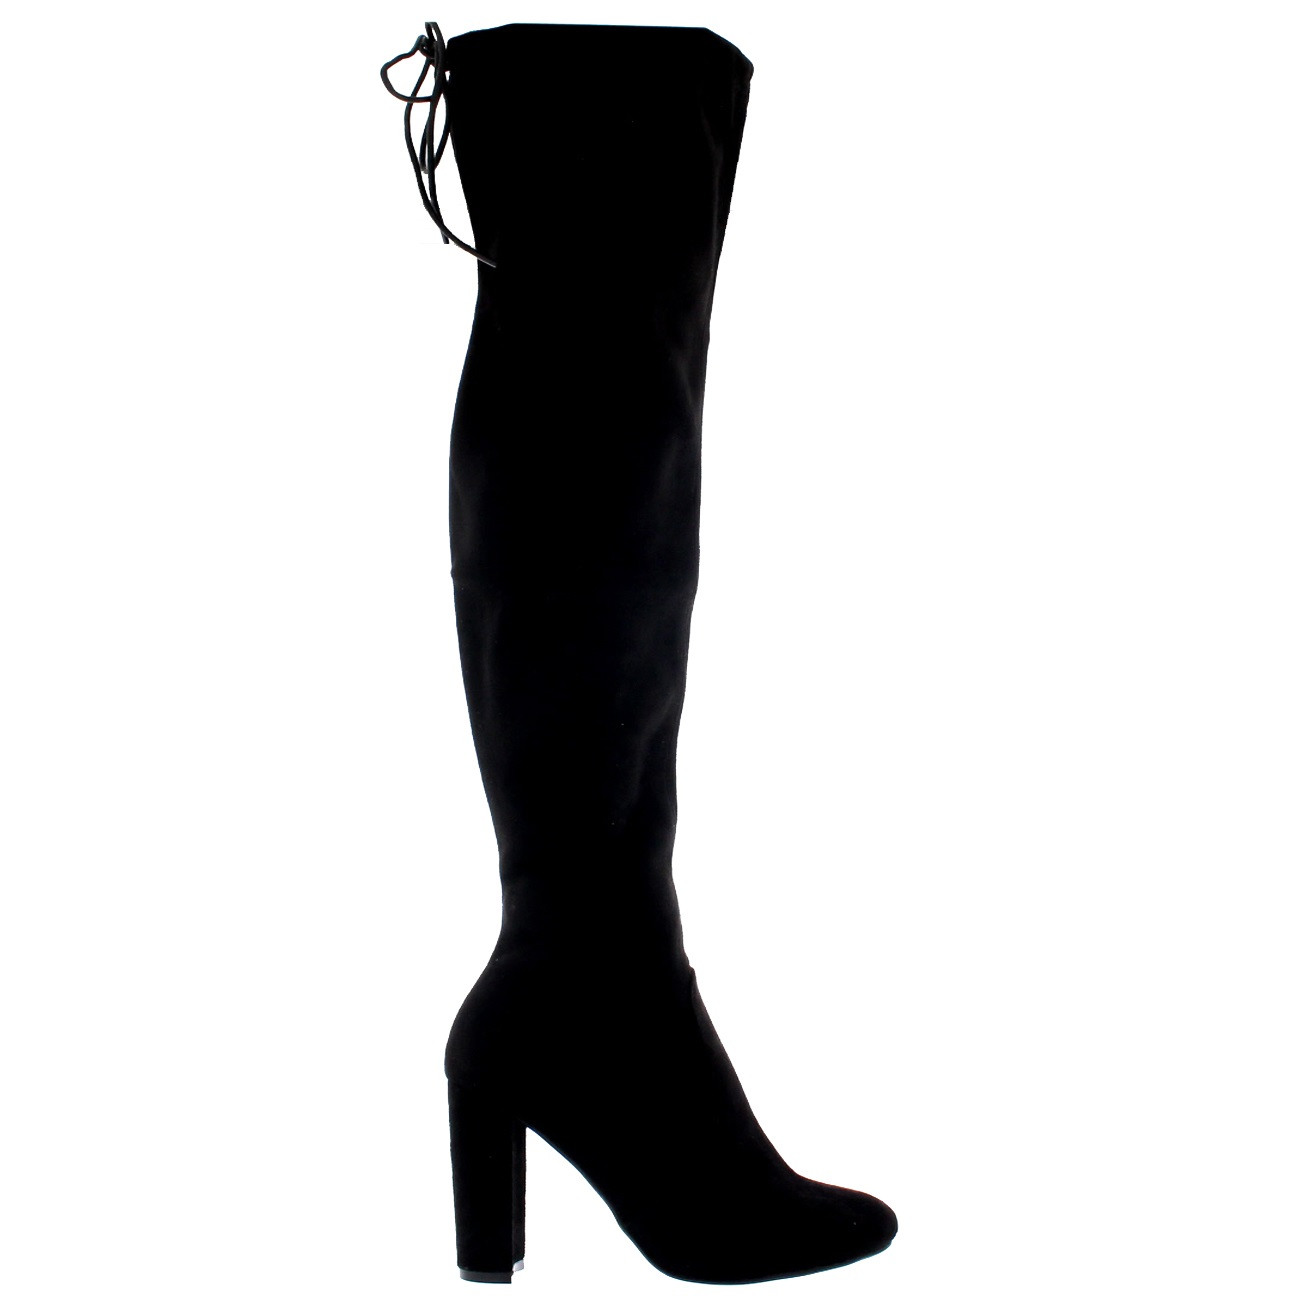 386a89d7e2d8 Womens Block Heel Stretch Long Over The Knee Riding Wide Fit High ...